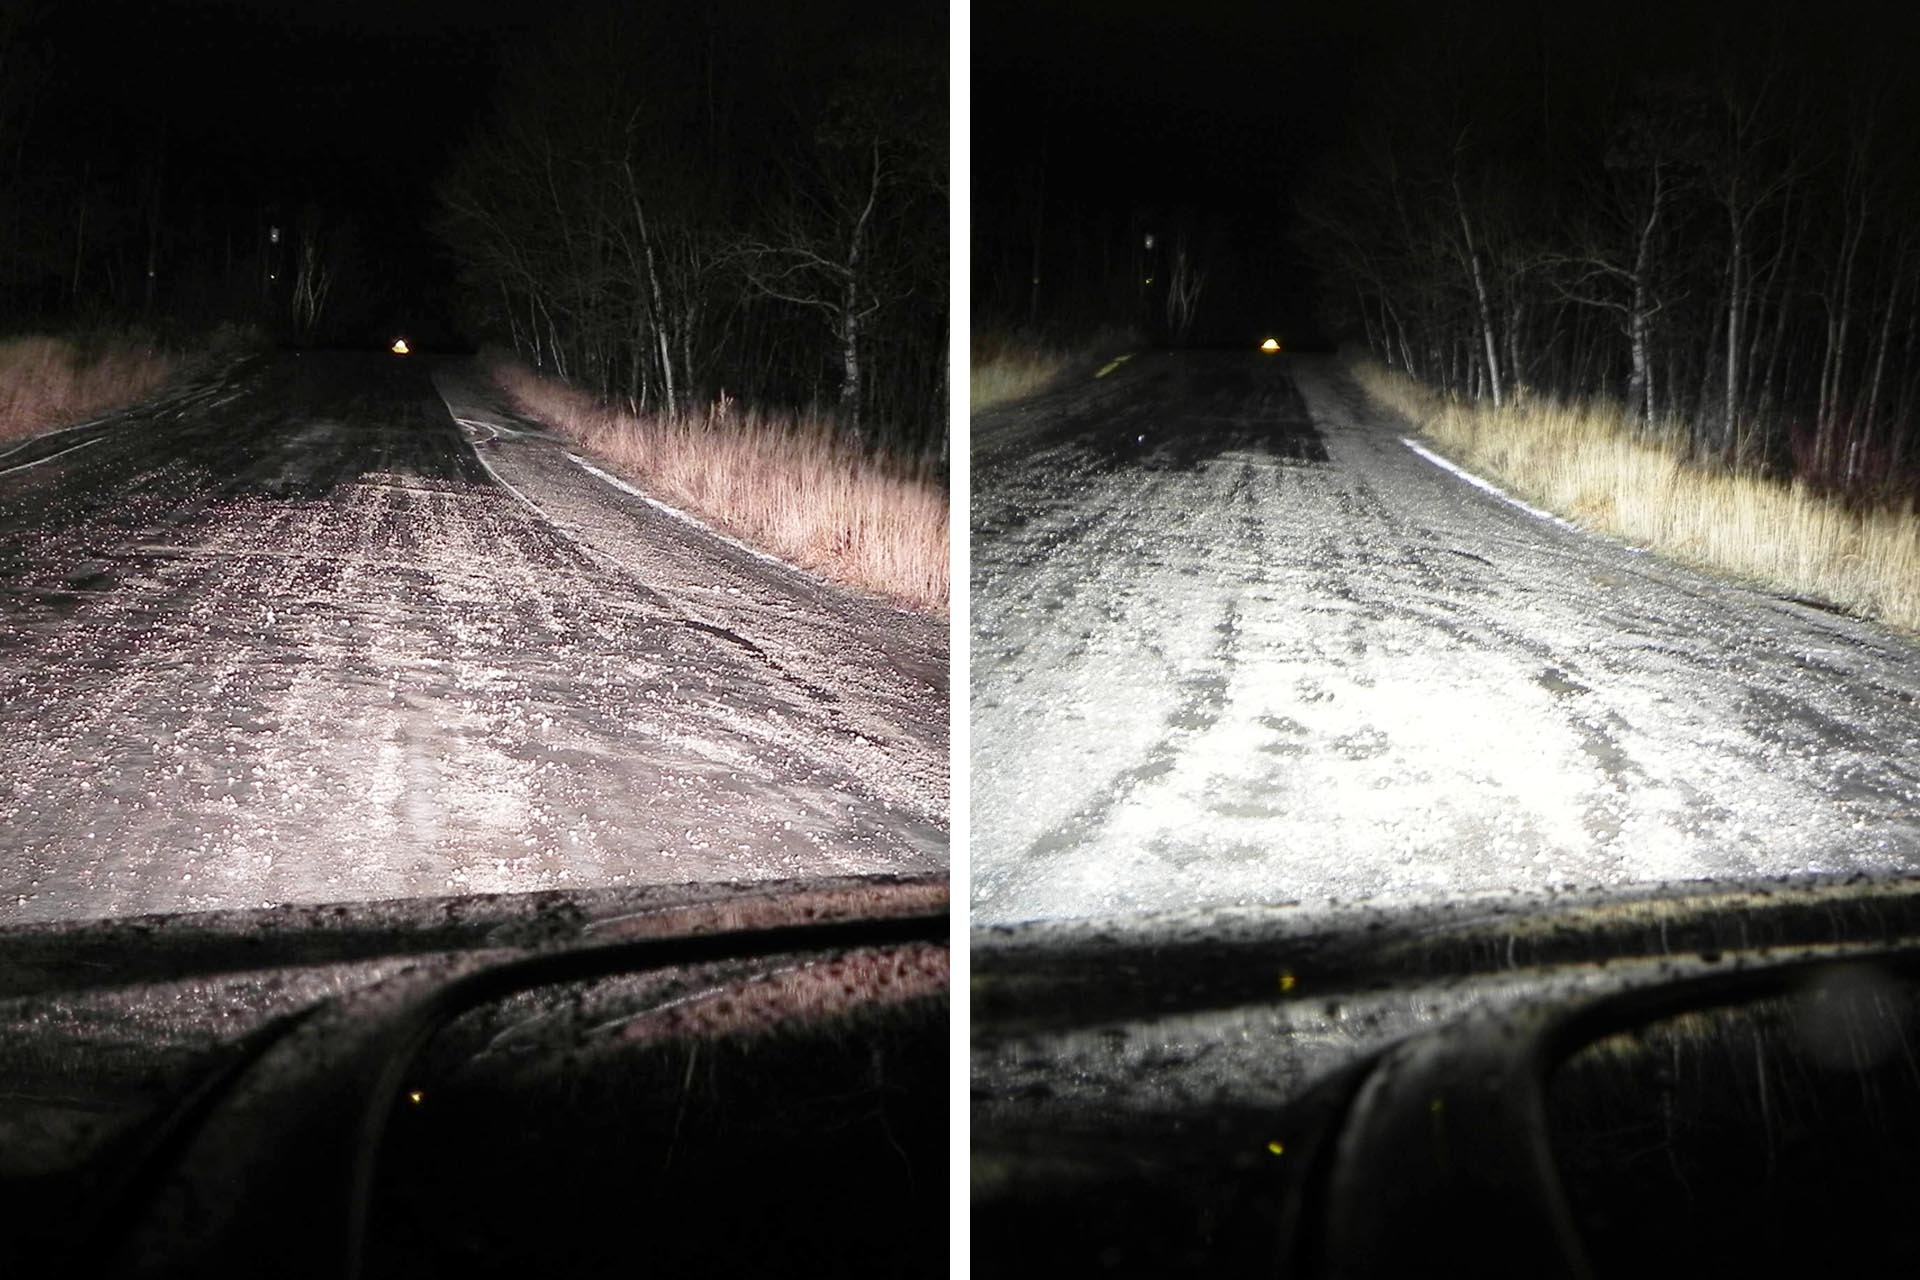 Here, you can see the difference in lighting output and saturation after installing a drop-in xenon lighting kit. Note the whiter, farther-reaching light and reduced dark spots on the road ahead.